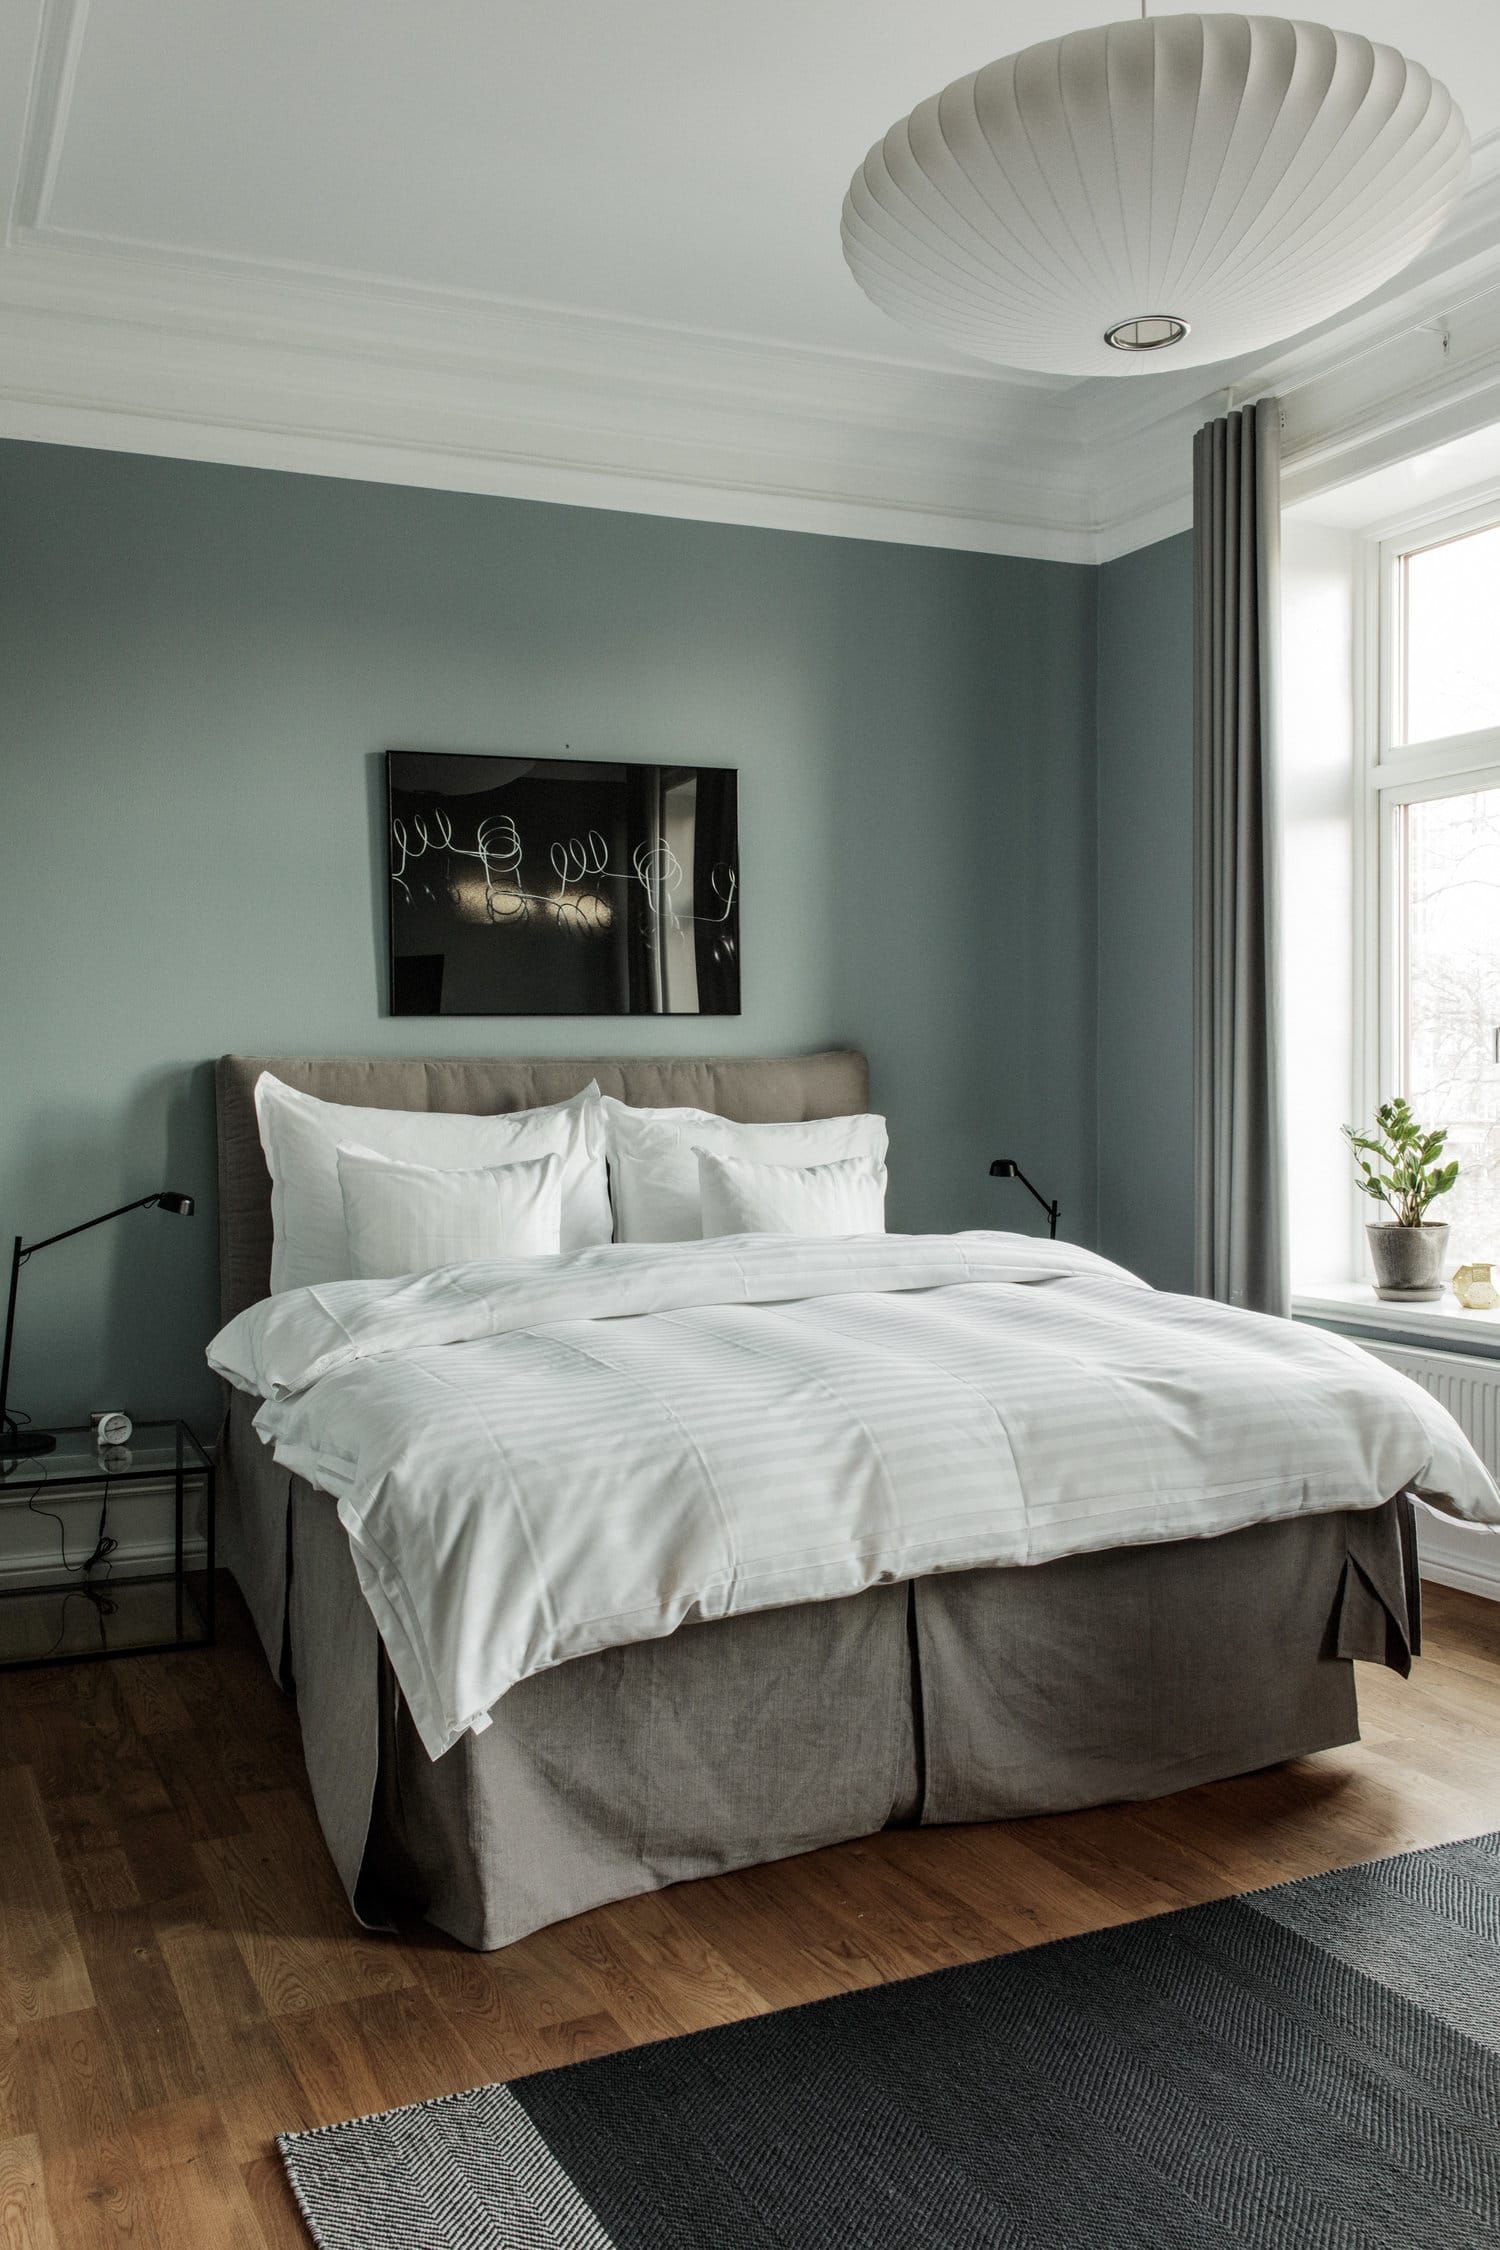 Small Hotel Room: How To Sleep Better, According To Sweden's Hotel Duxiana